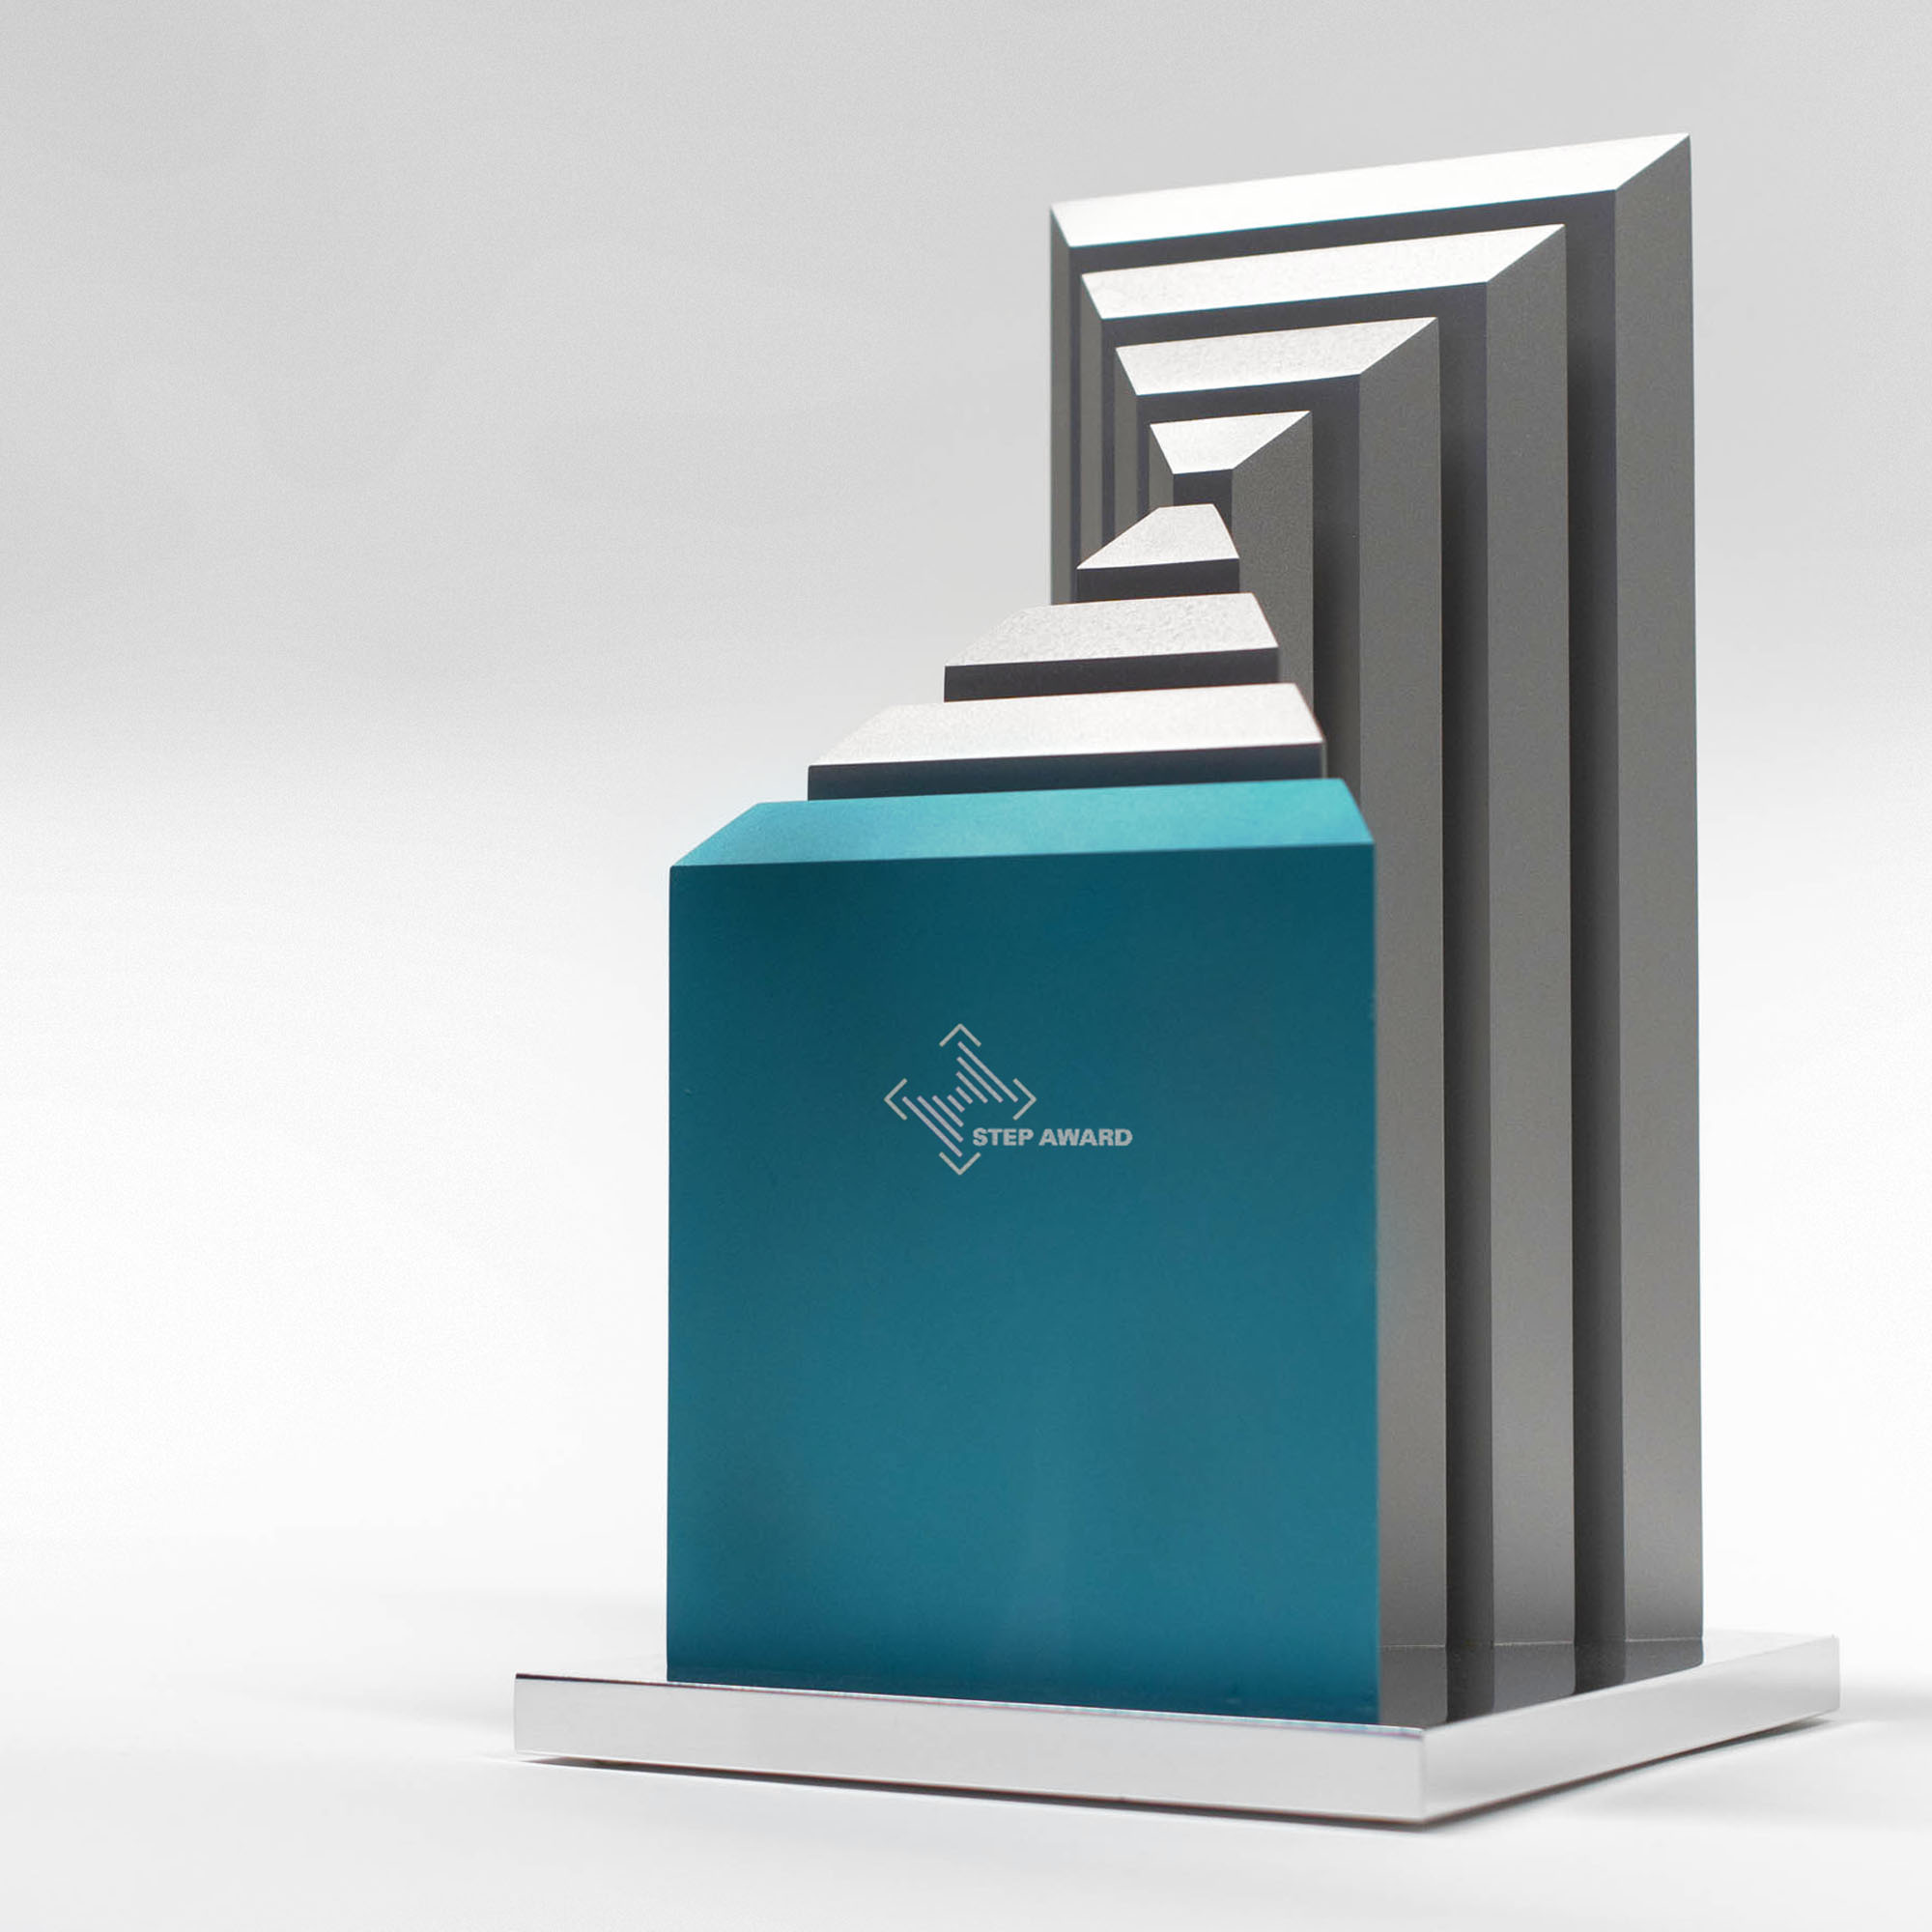 Design and implementation of the Step Award trophy of the FAZ Institute